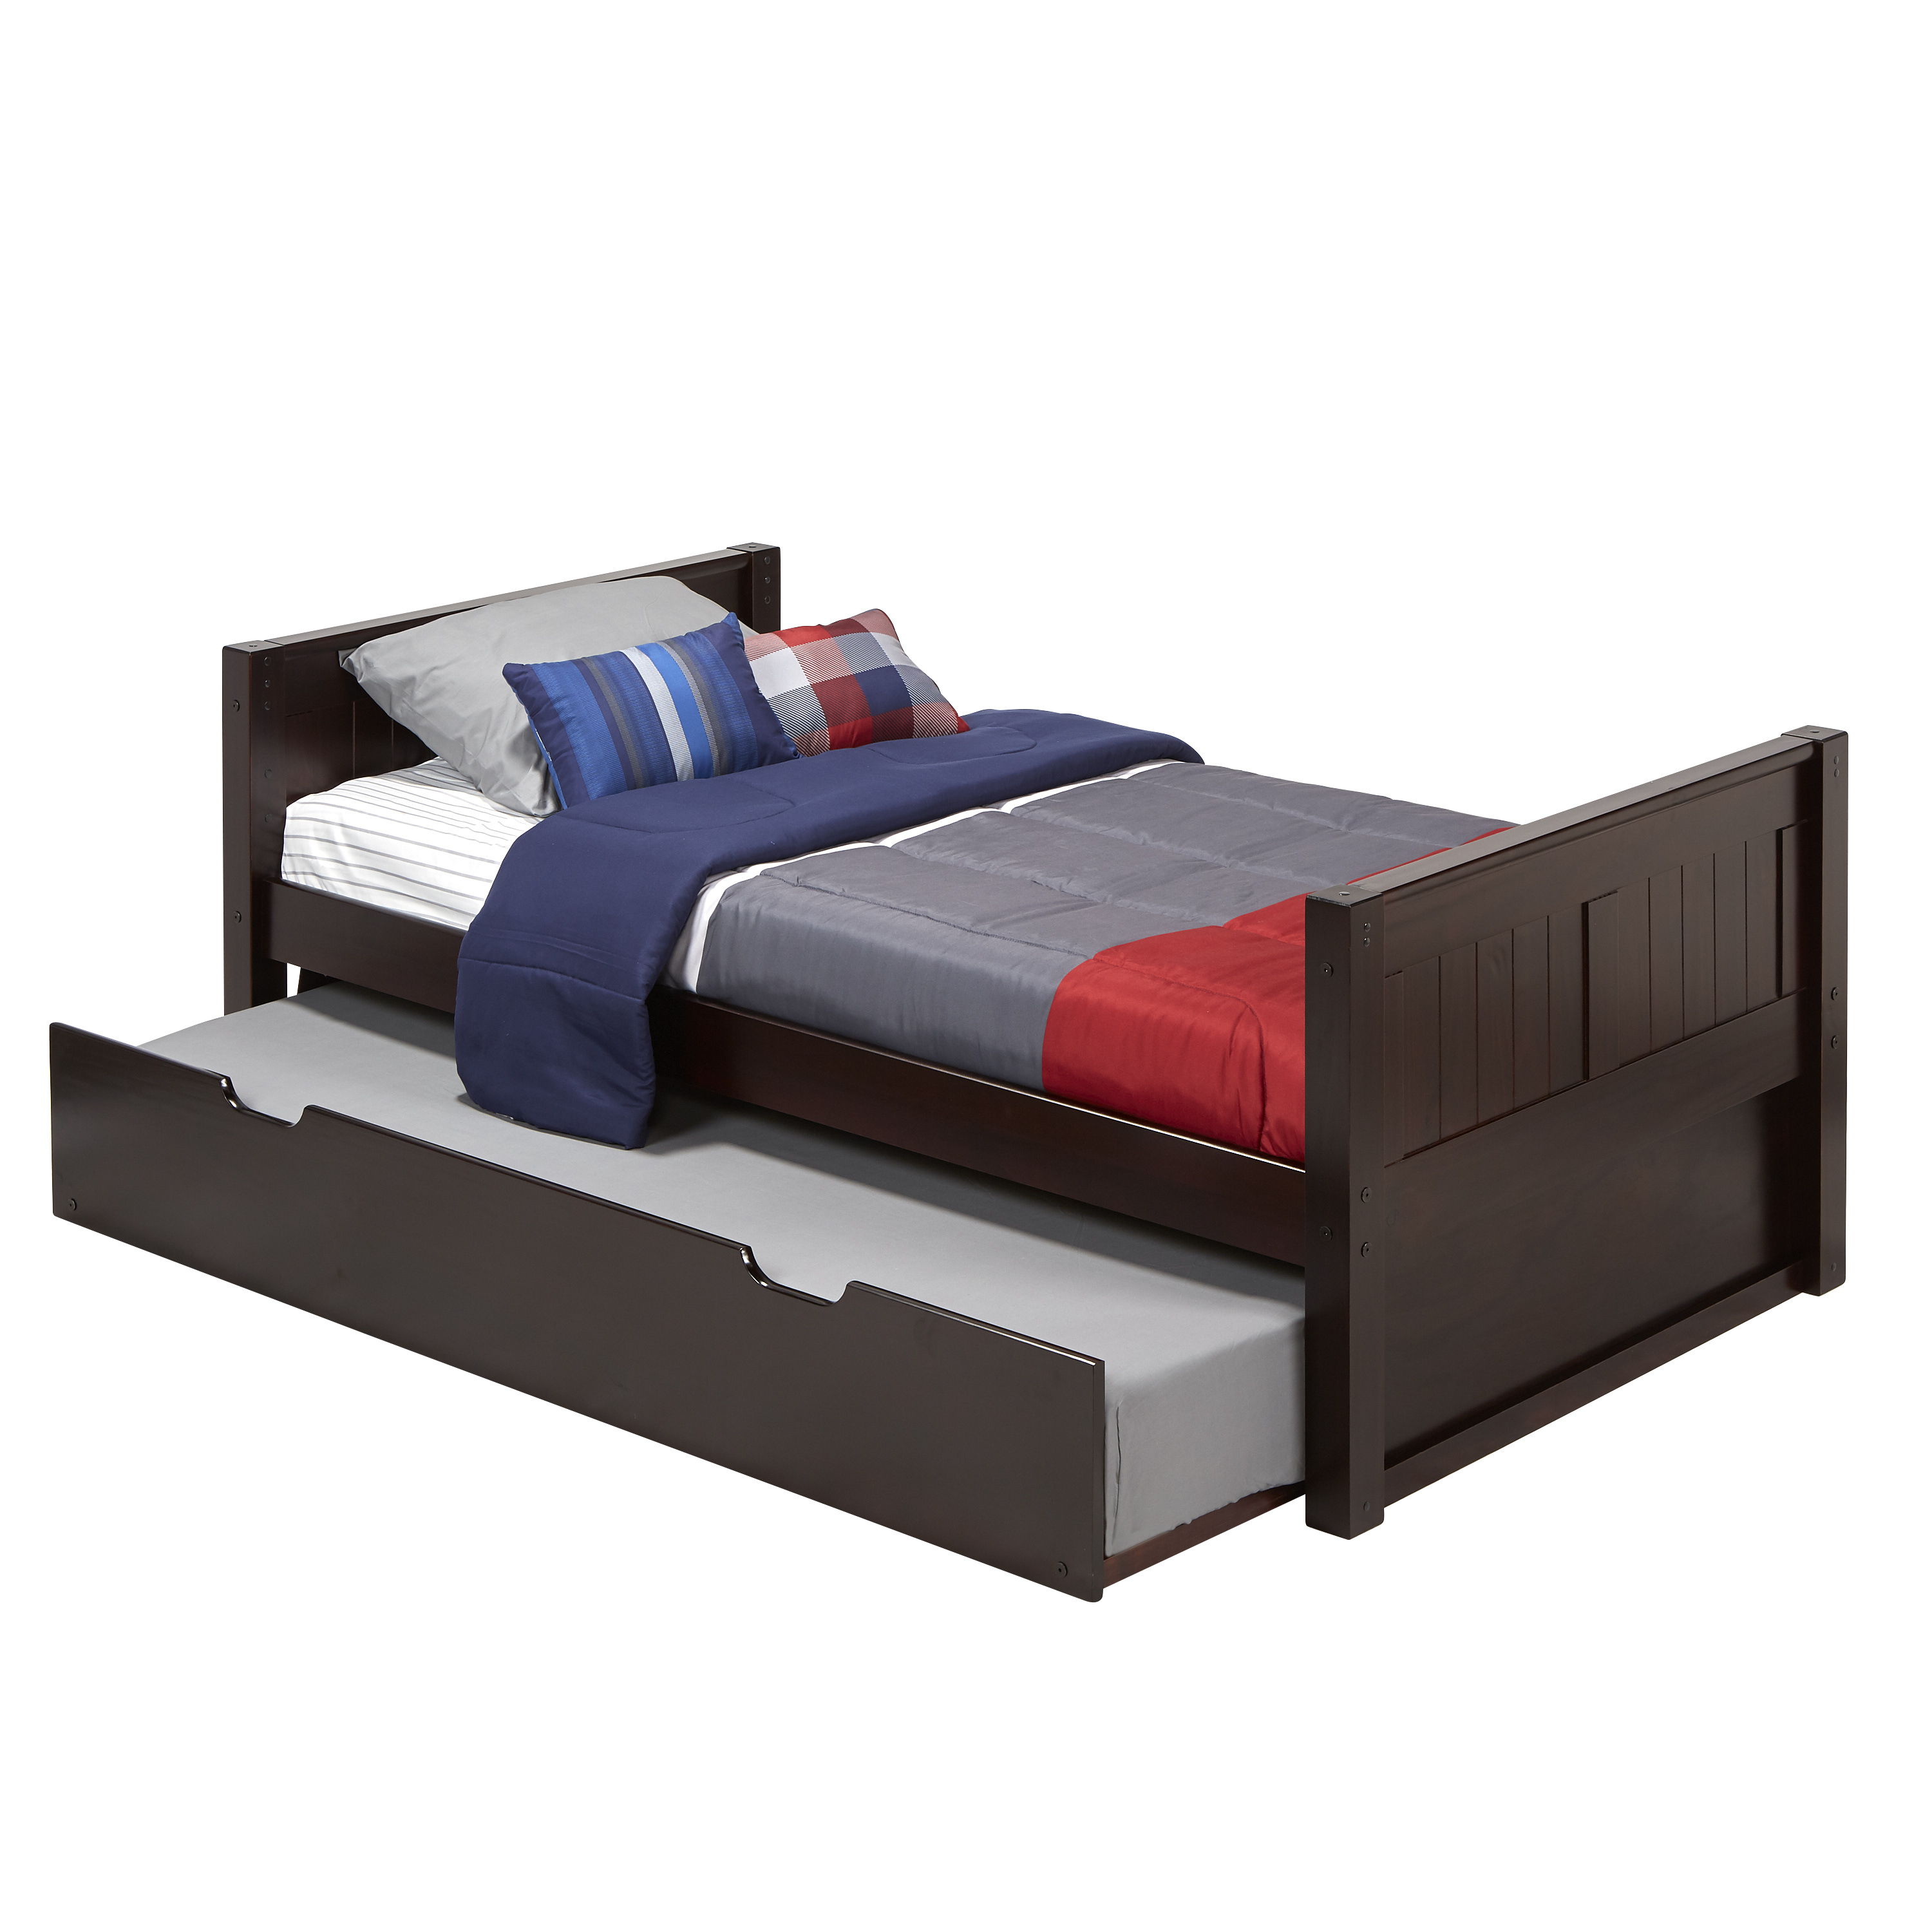 Camaflexi Twin Size Platform Bed with Twin Trundle - Panel Headboard - Cappuccino Finish